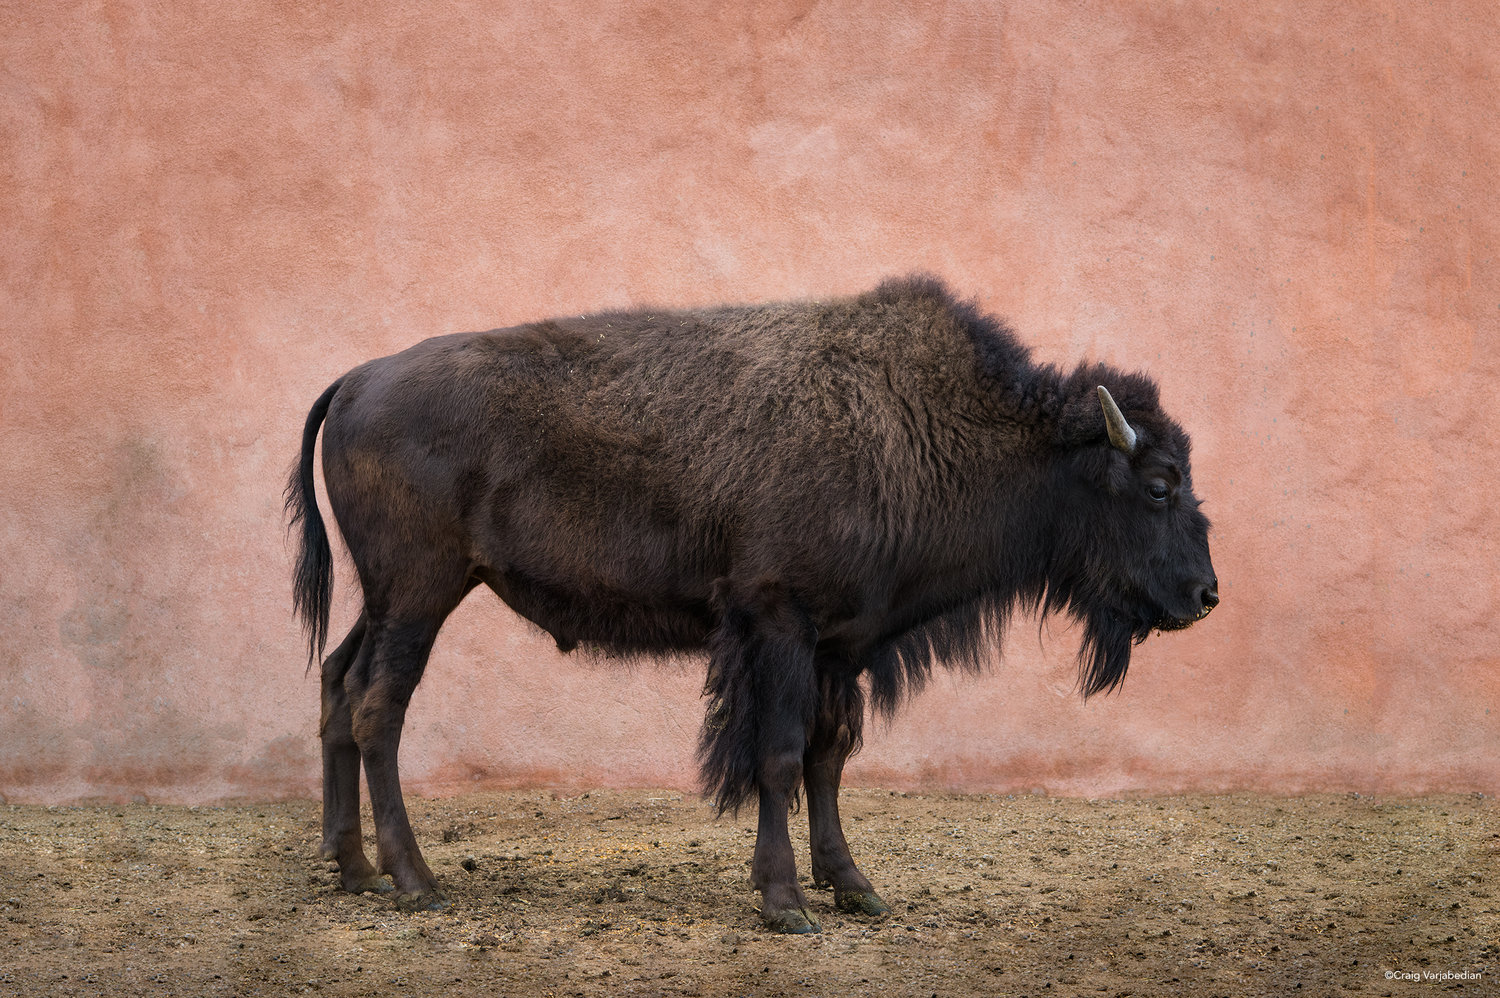 Clyde-the-bison-in-Santa-Fe.jpg